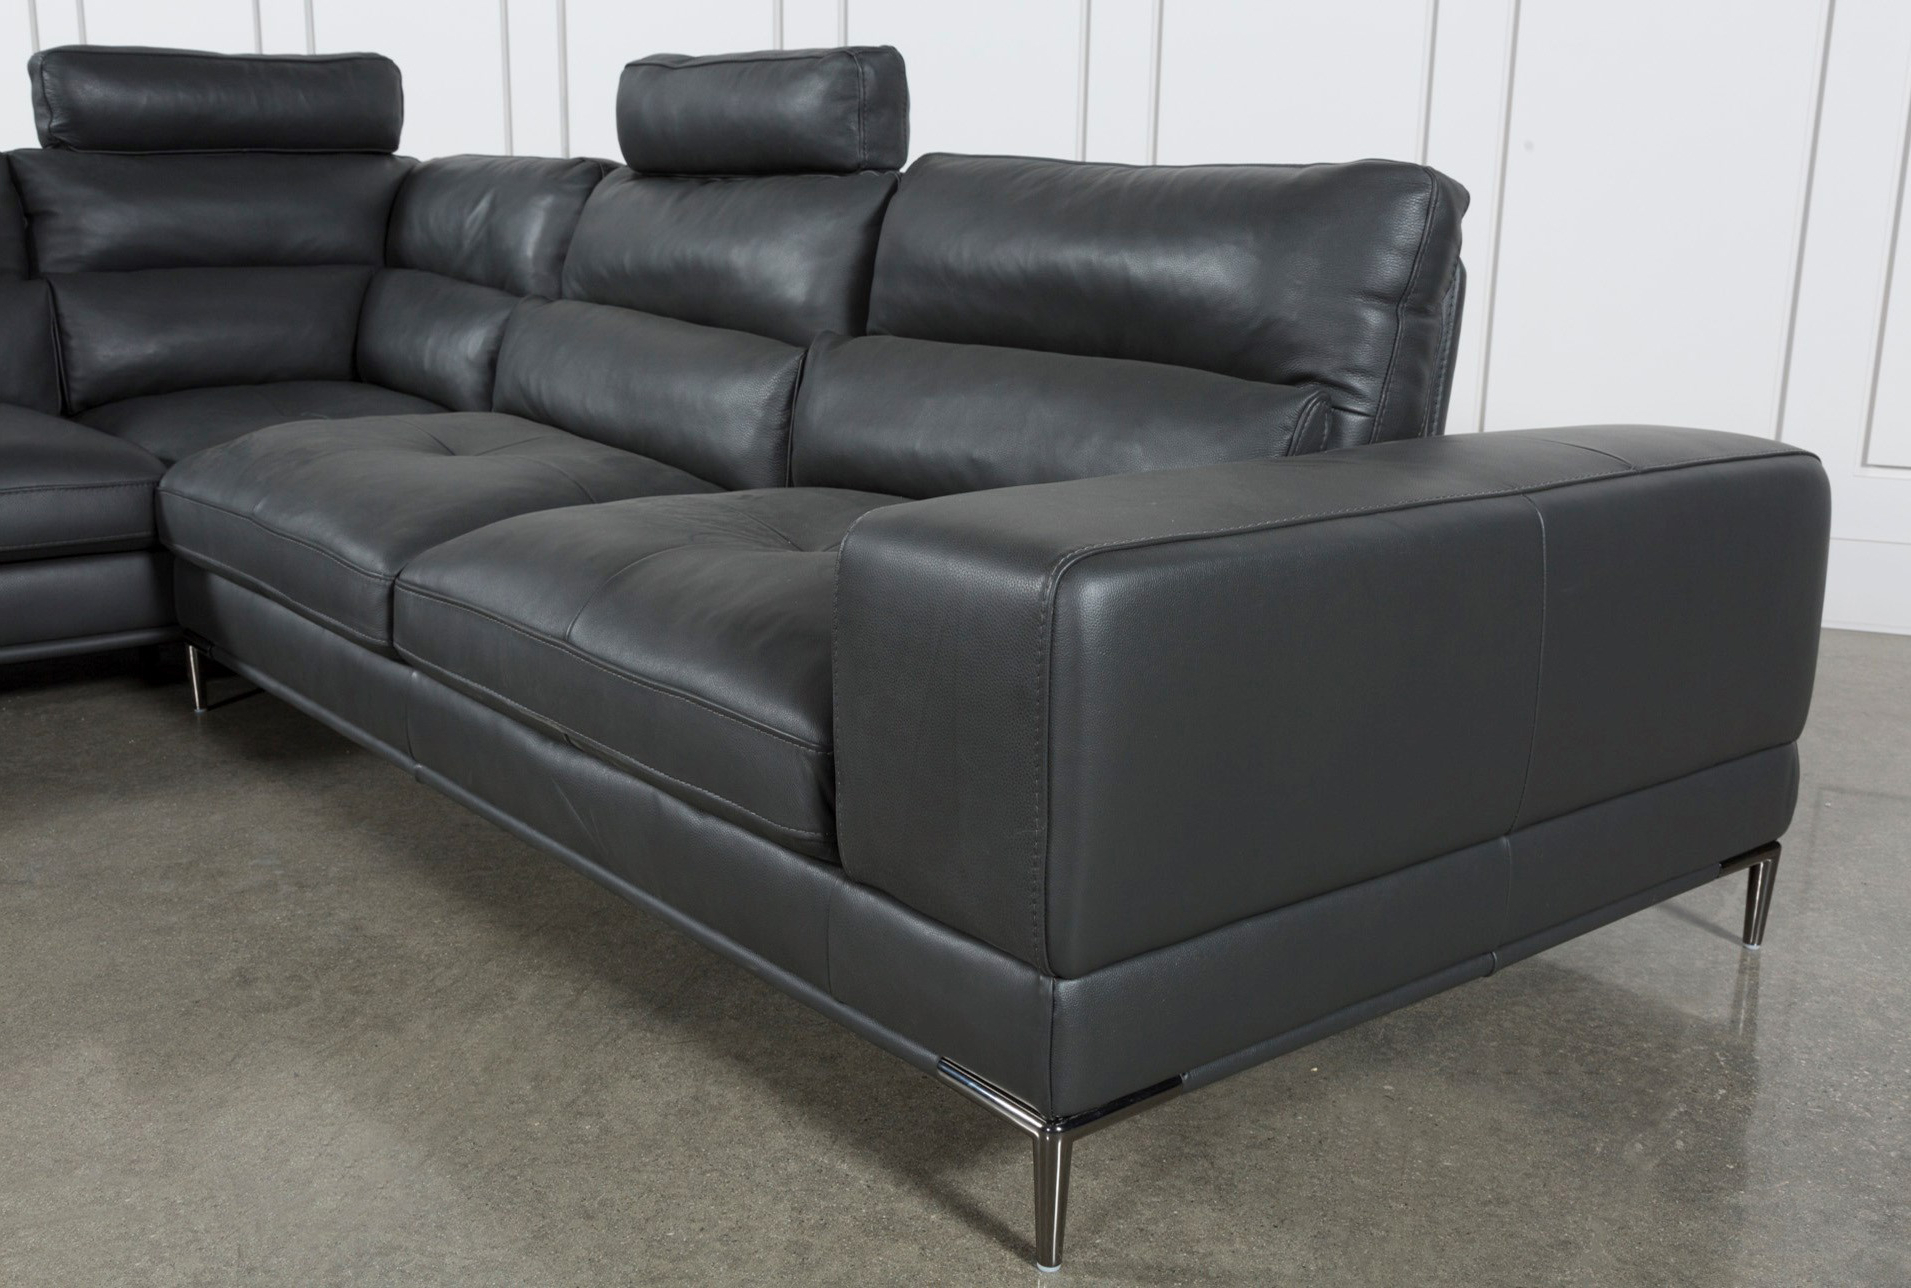 Well Liked Tenny Dark Grey 2 Piece Right Facing Chaise Sectional W/2 Headrest Pertaining To Tenny Dark Grey 2 Piece Right Facing Chaise Sectionals With 2 Headrest (View 20 of 20)